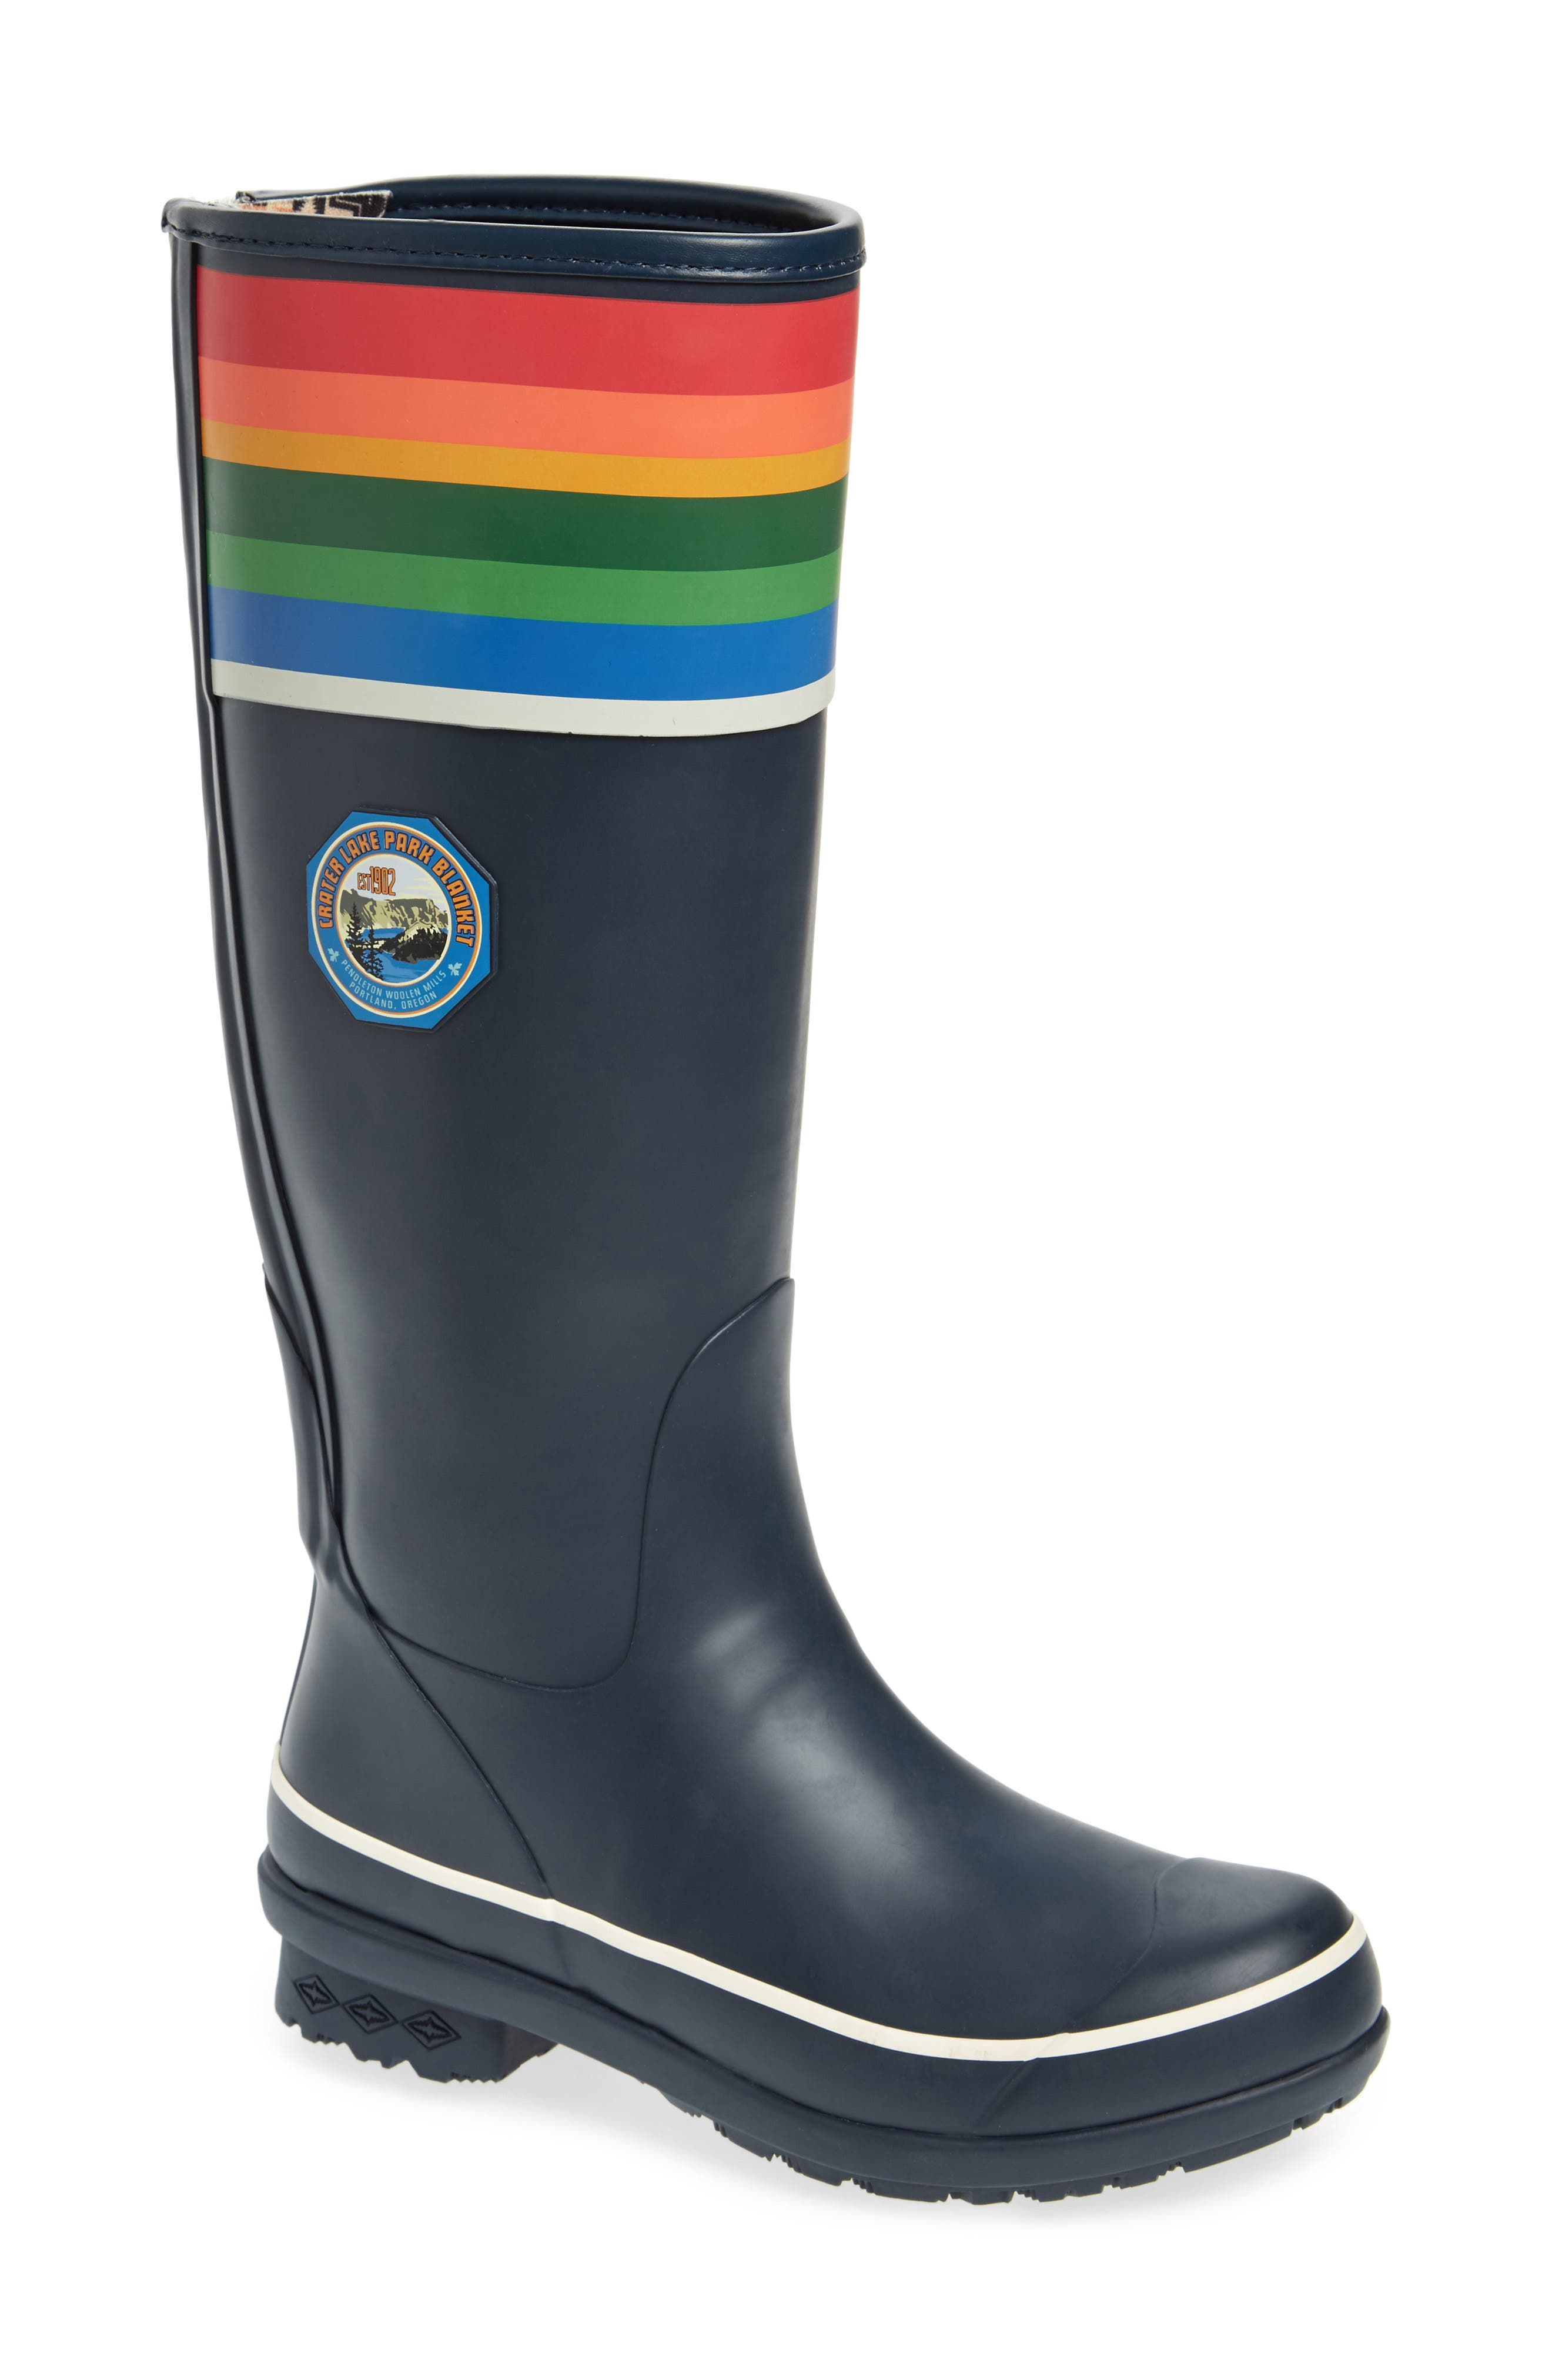 PENDLETON Crater Lake National Park Tall Rain Boot, Main, color, BLUE